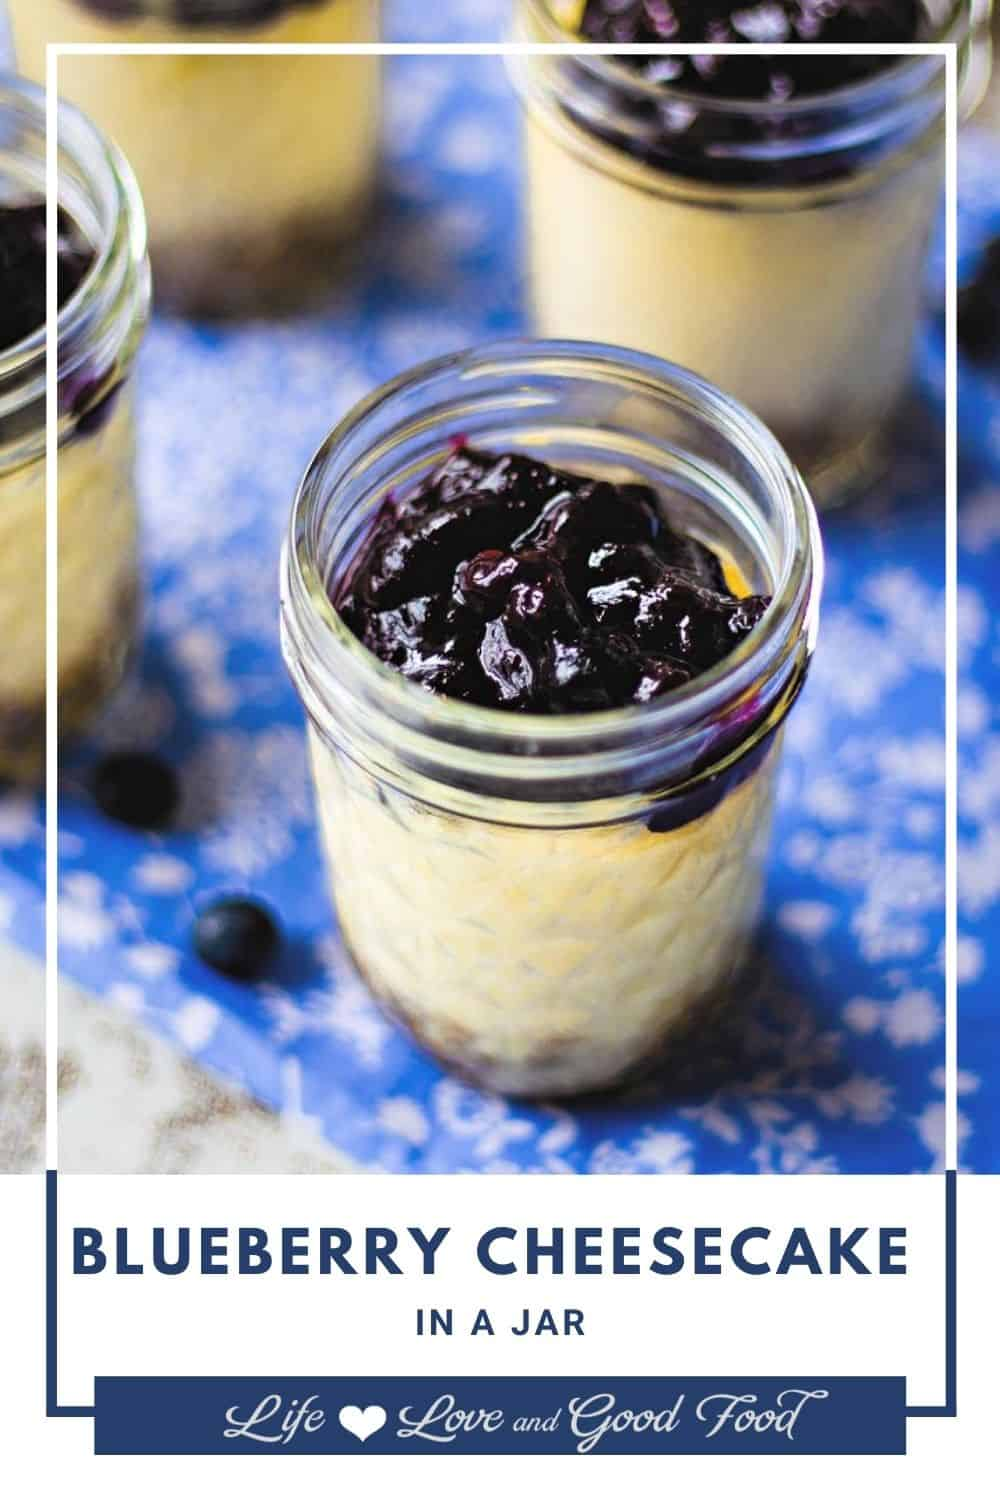 Blueberry Cheesecake in a Jar with a graham cracker crust, creamy baked cheesecake filling, and a delicious blueberry compote topping is the ultimate Summer time—or anytime—dessert! Devout cheesecake fans will flip over these smooth and velvety individual cheesecakes. The filling is straight-out classic cheesecake—not the no-bake stuff—baked in a water bath for a delicate and rich texture. The blueberry topping is a mixture of fresh blueberries and blueberry jam melted together.